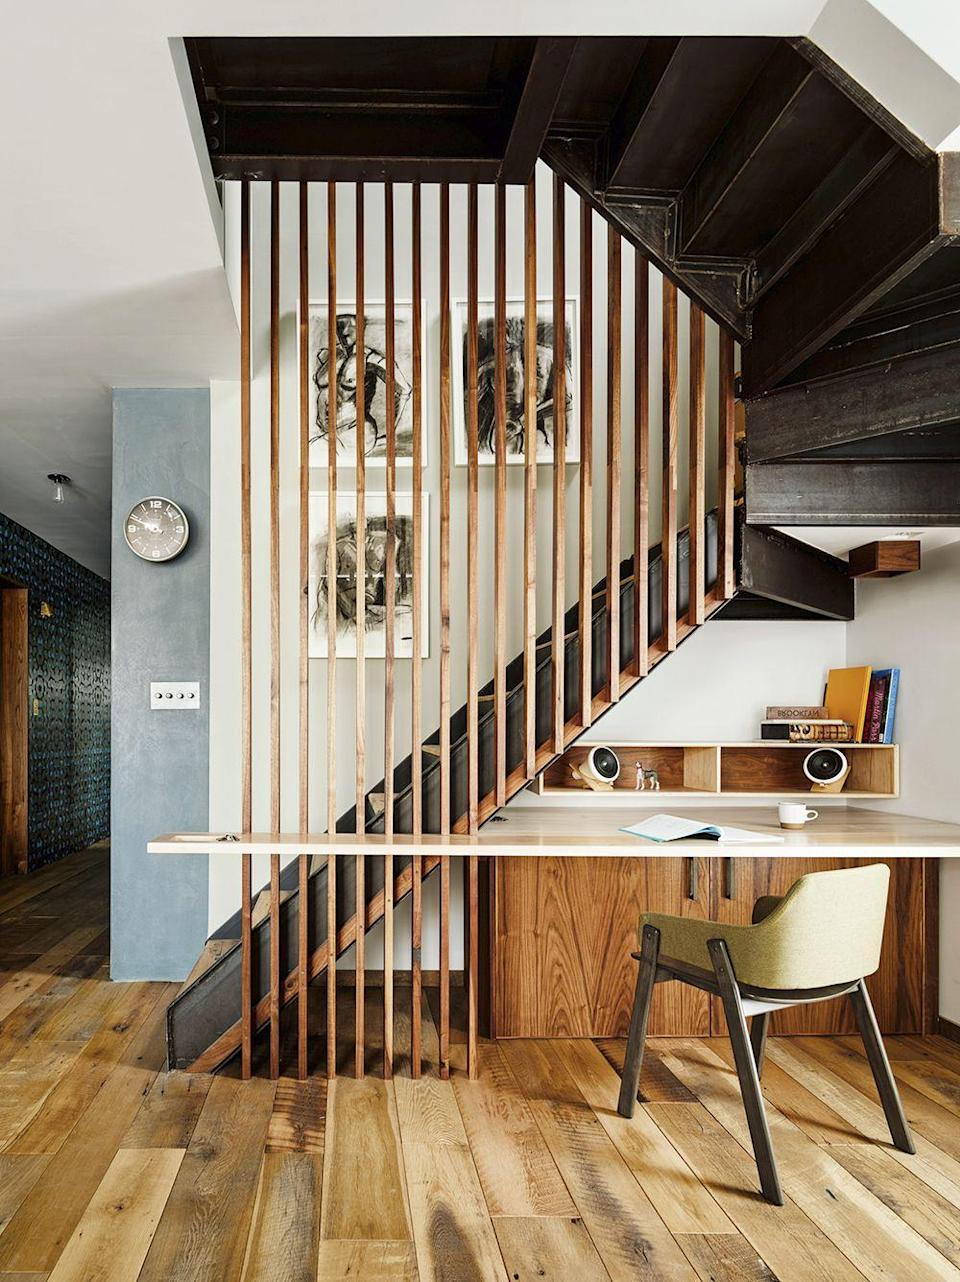 """<p>Make use of 'dead space' under your staircase by slotting in an office, like New York design practice General Assembly has in this Brooklyn apartment. Genius ideas include the slatted wall that lets light filter into the study from upstairs and the way the desk wraps around it to create extra workspace. <a href=""""https://www.genassembly.com/"""" rel=""""nofollow noopener"""" target=""""_blank"""" data-ylk=""""slk:genassembly.com"""" class=""""link rapid-noclick-resp"""">genassembly.com</a></p>"""